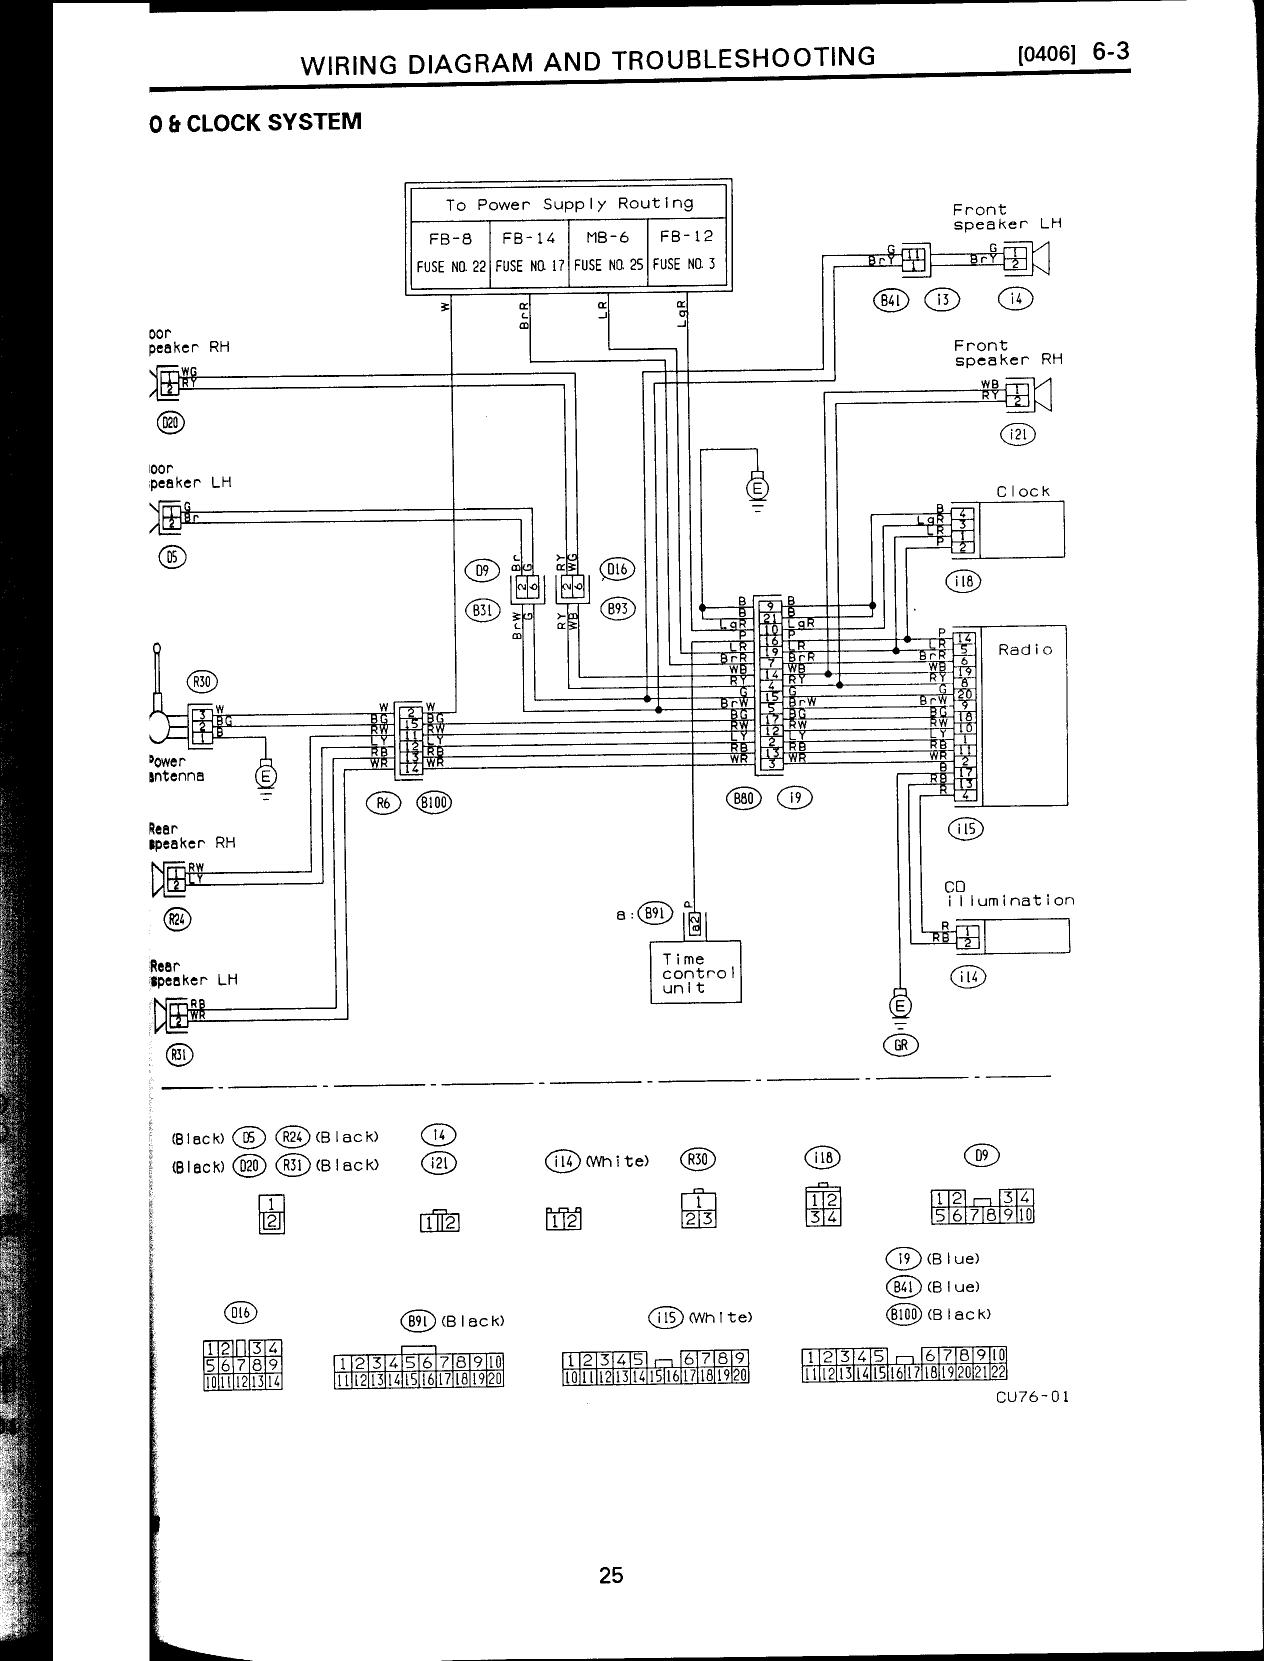 electrical wiring diagram subaru svx 1992-1997 factory service repair  manual auto parts & accessories tatech auto parts and vehicles  tatech informatica